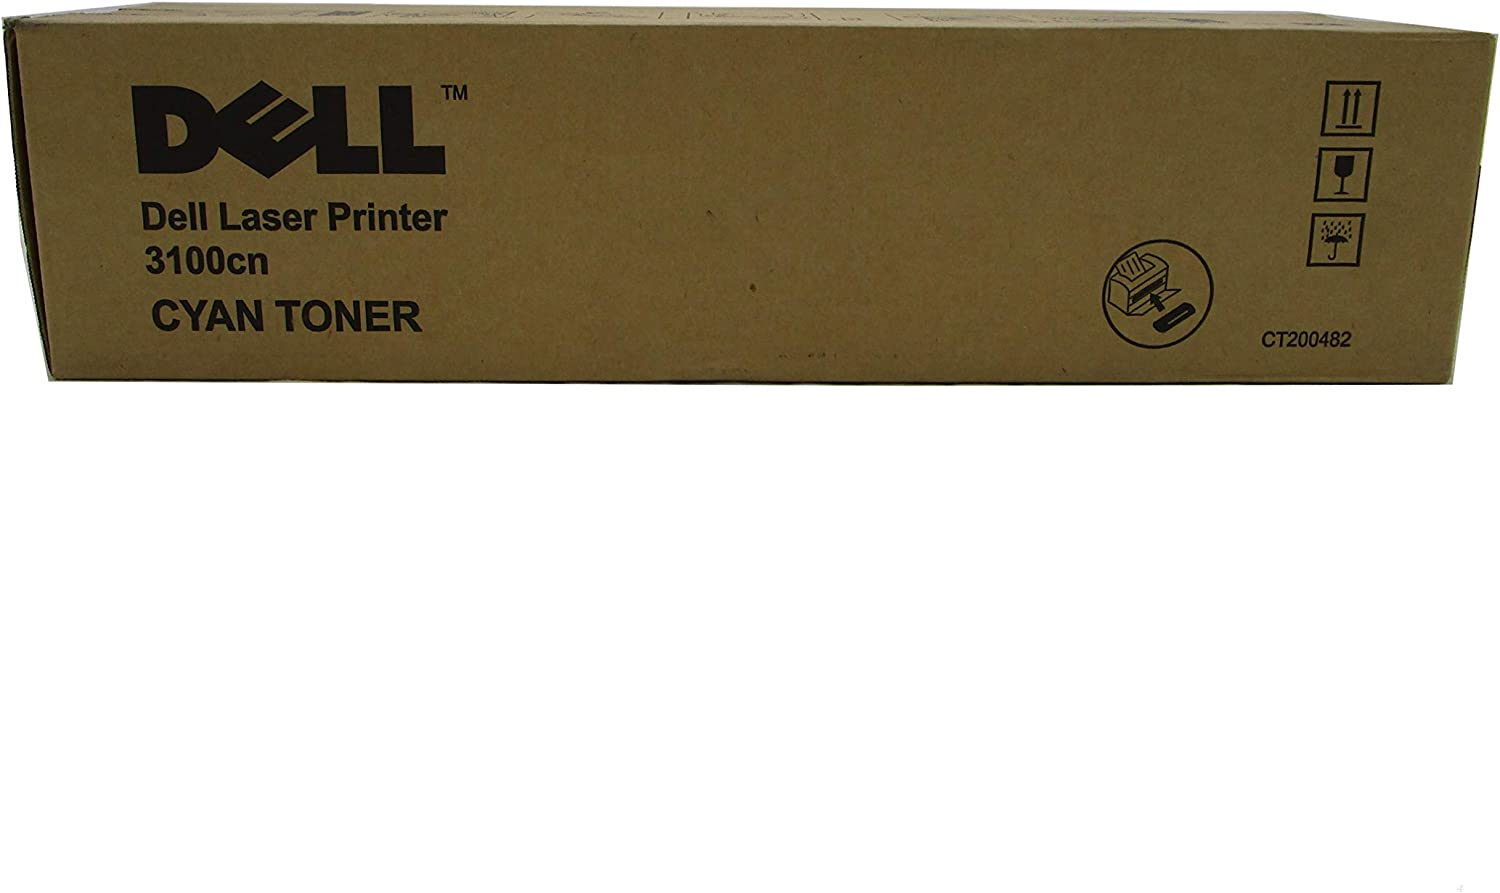 Dell K4973 CT200482 3100CN Laser Toner Cartridge (Cyan) in Retail Packaging